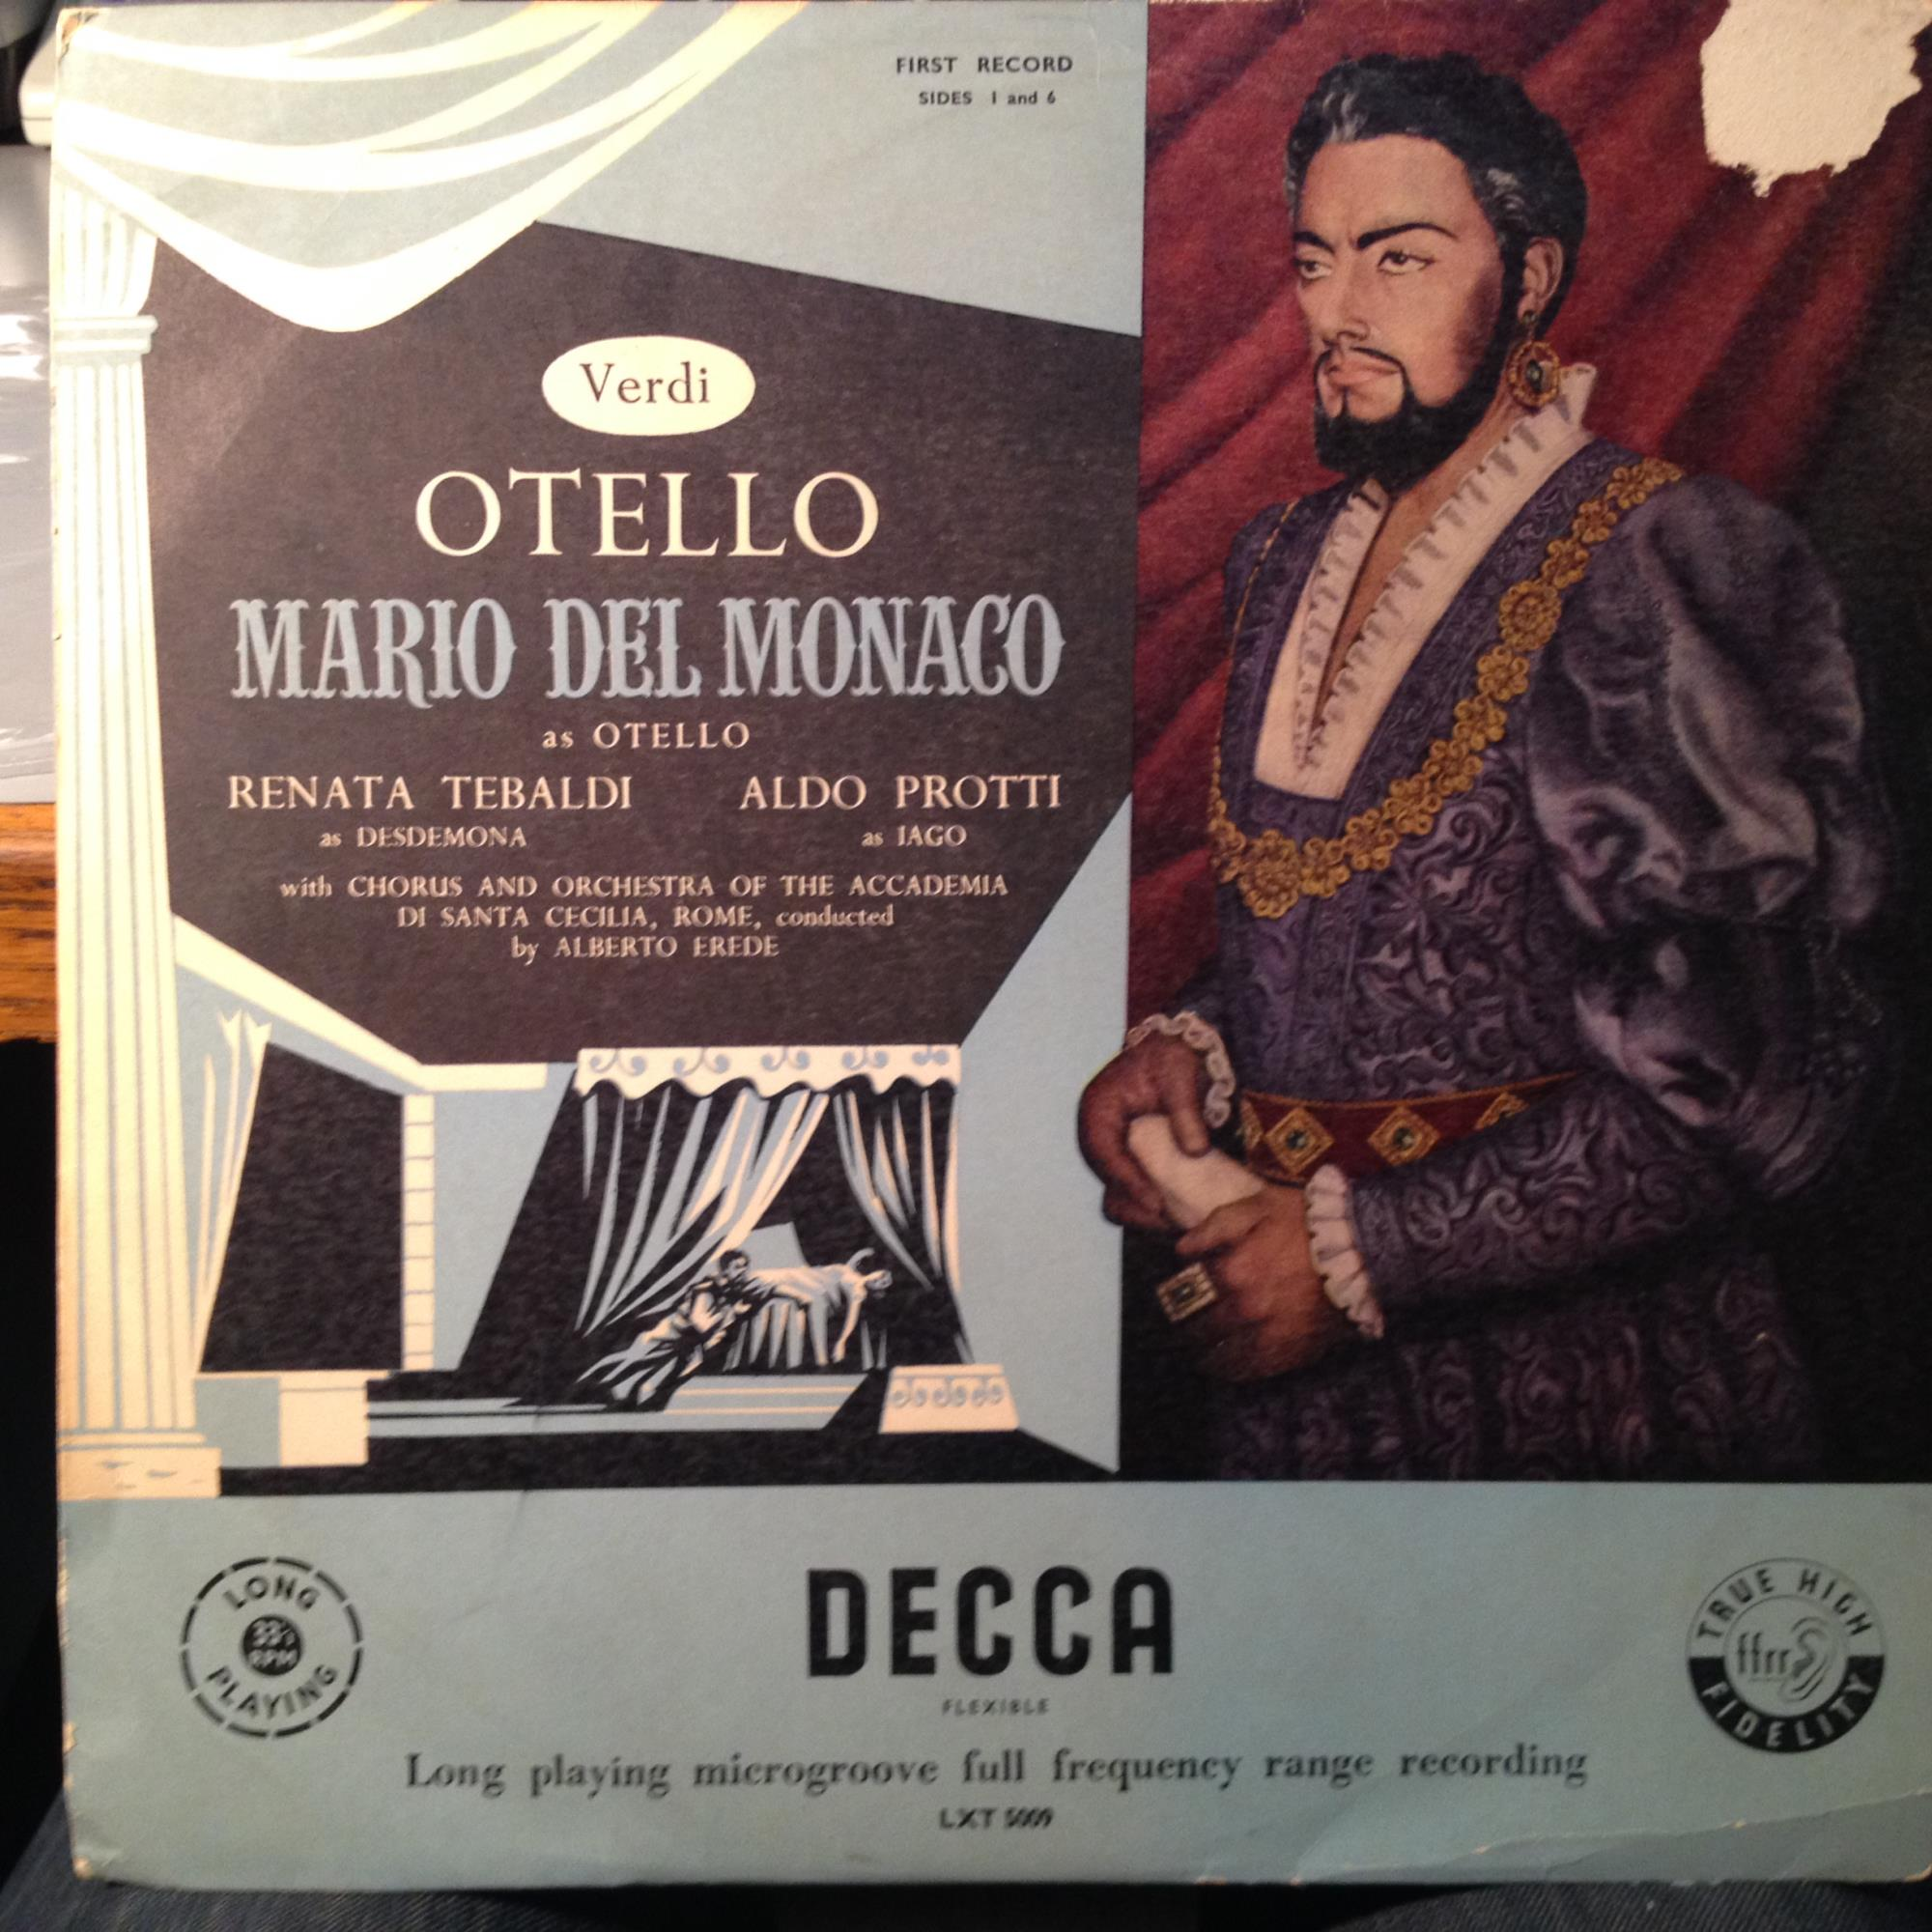 othello jewish singles Join curiouscom and get a daily  seekers for an apparent rise in anti-jewish  landed him seven billboard top 10 singles and launched.